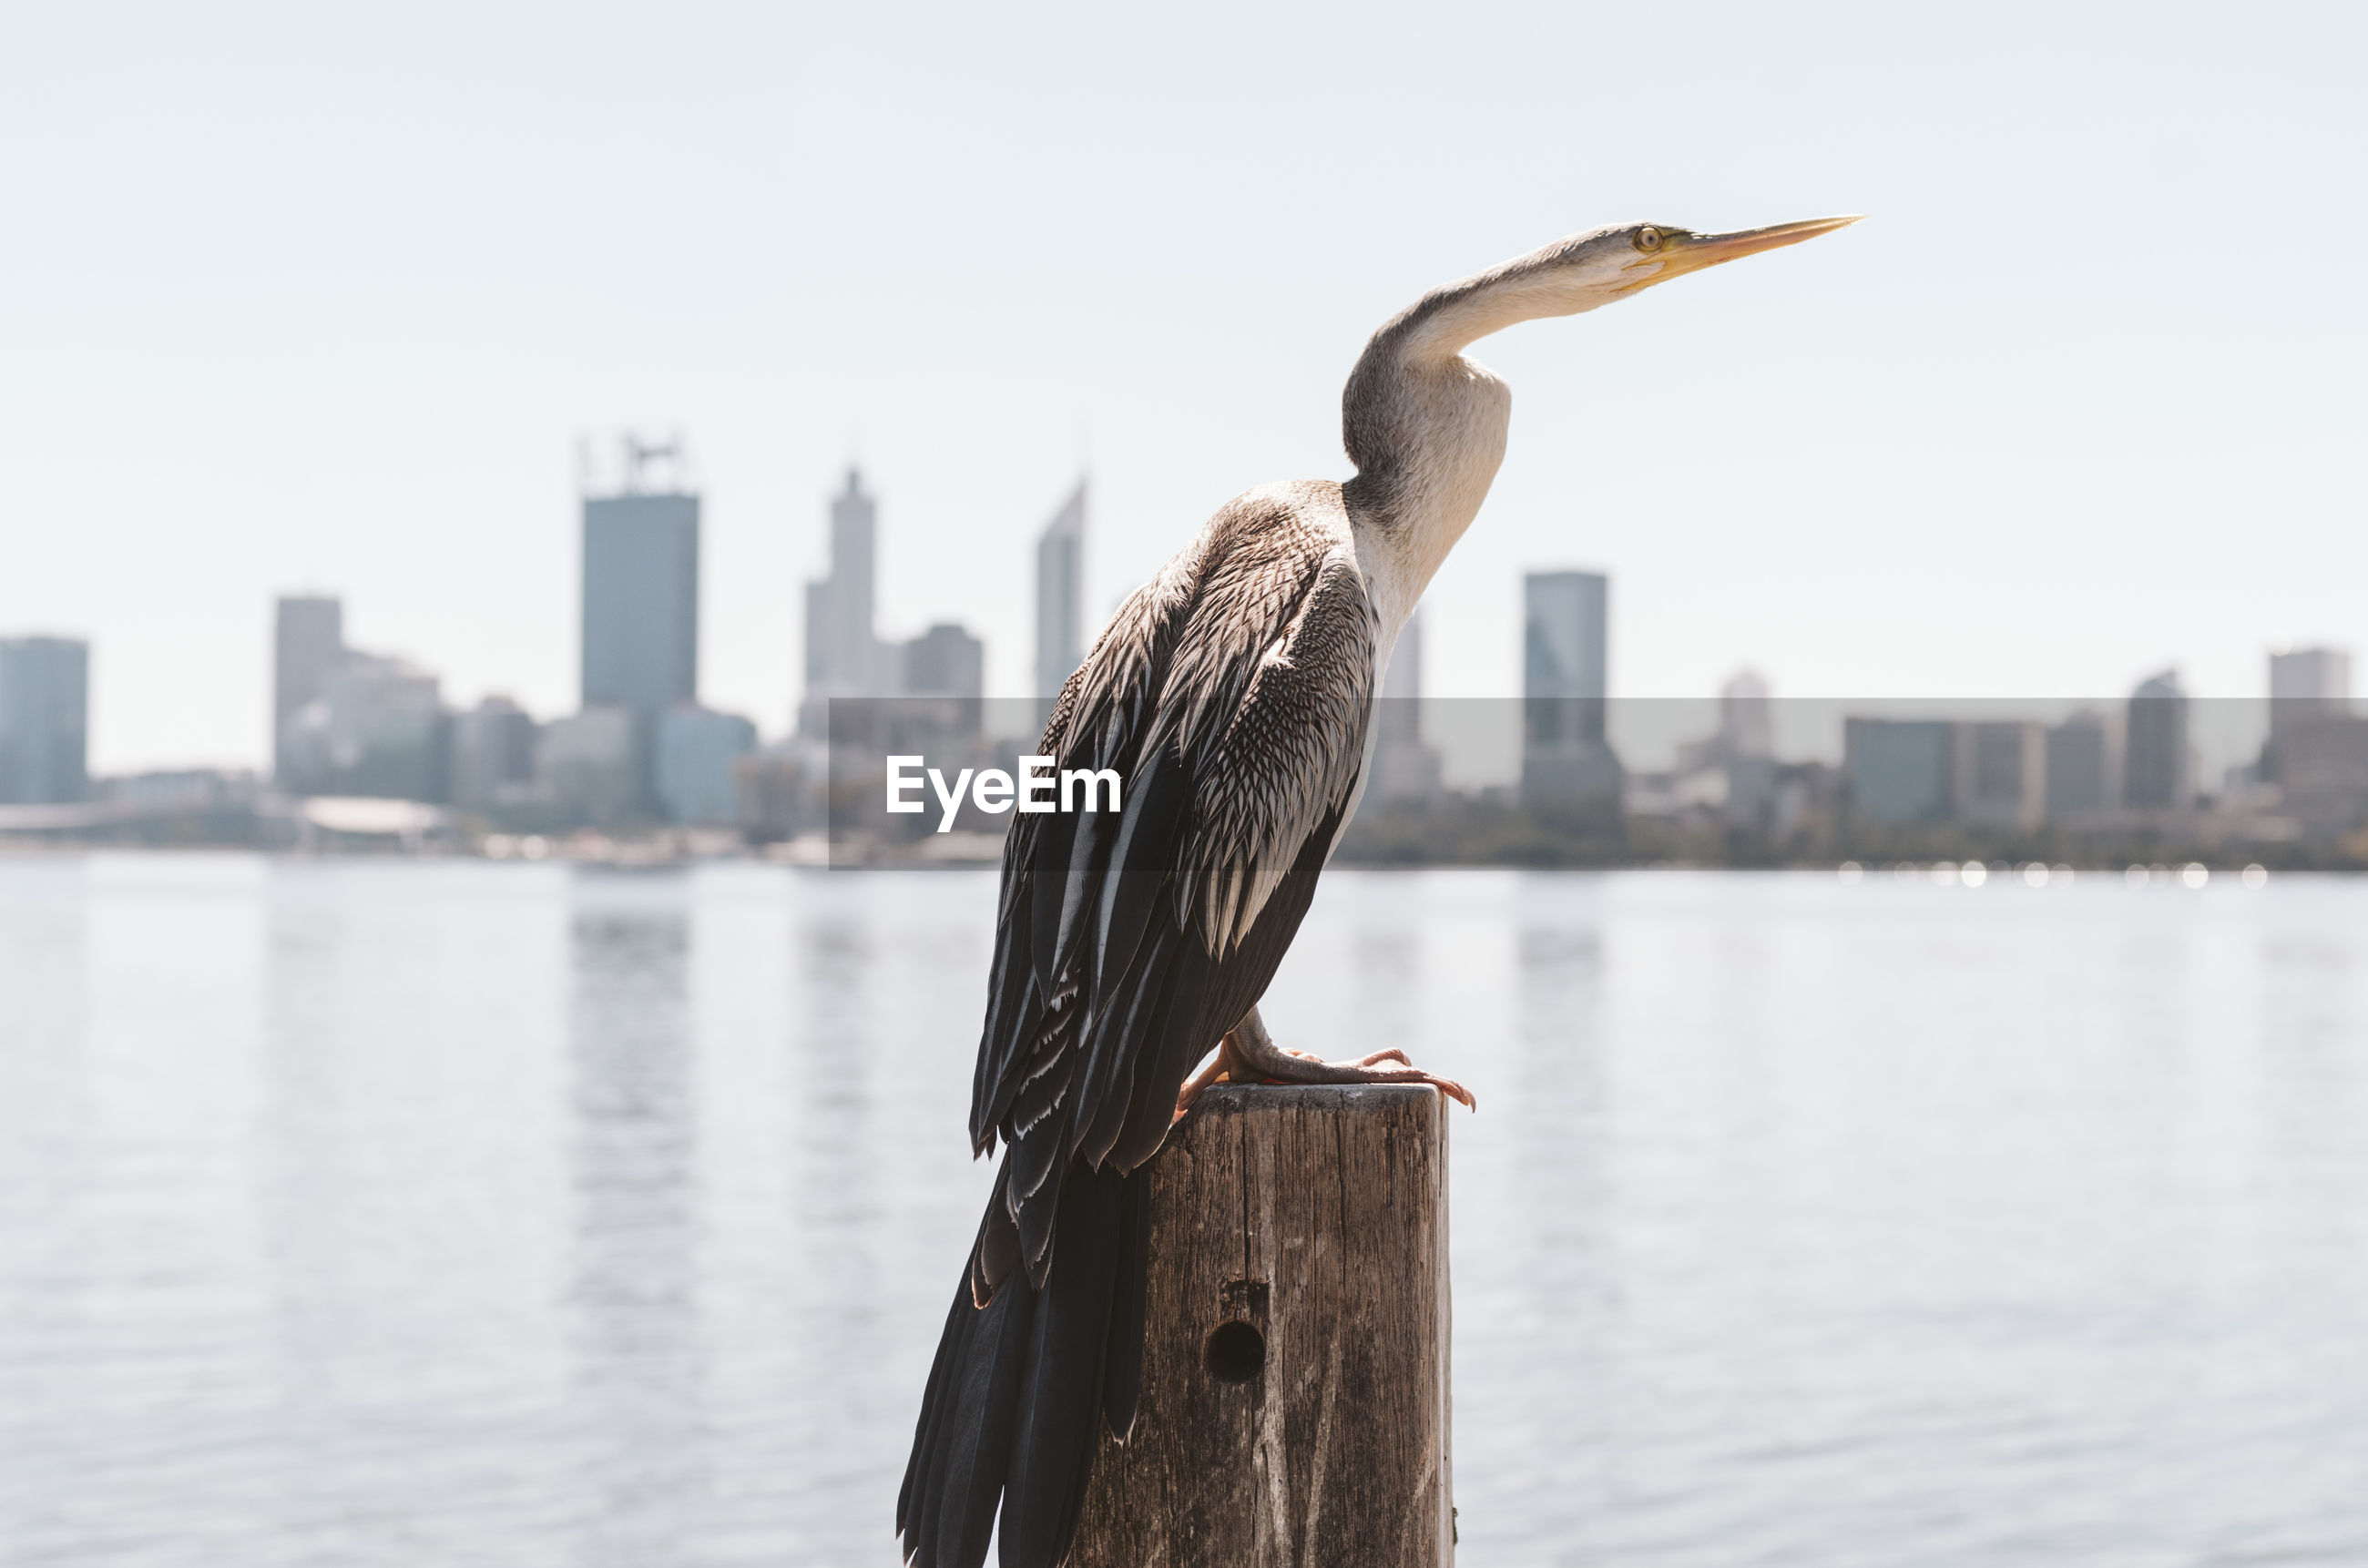 BIRD PERCHING ON WOODEN POST IN RIVER AGAINST CITY